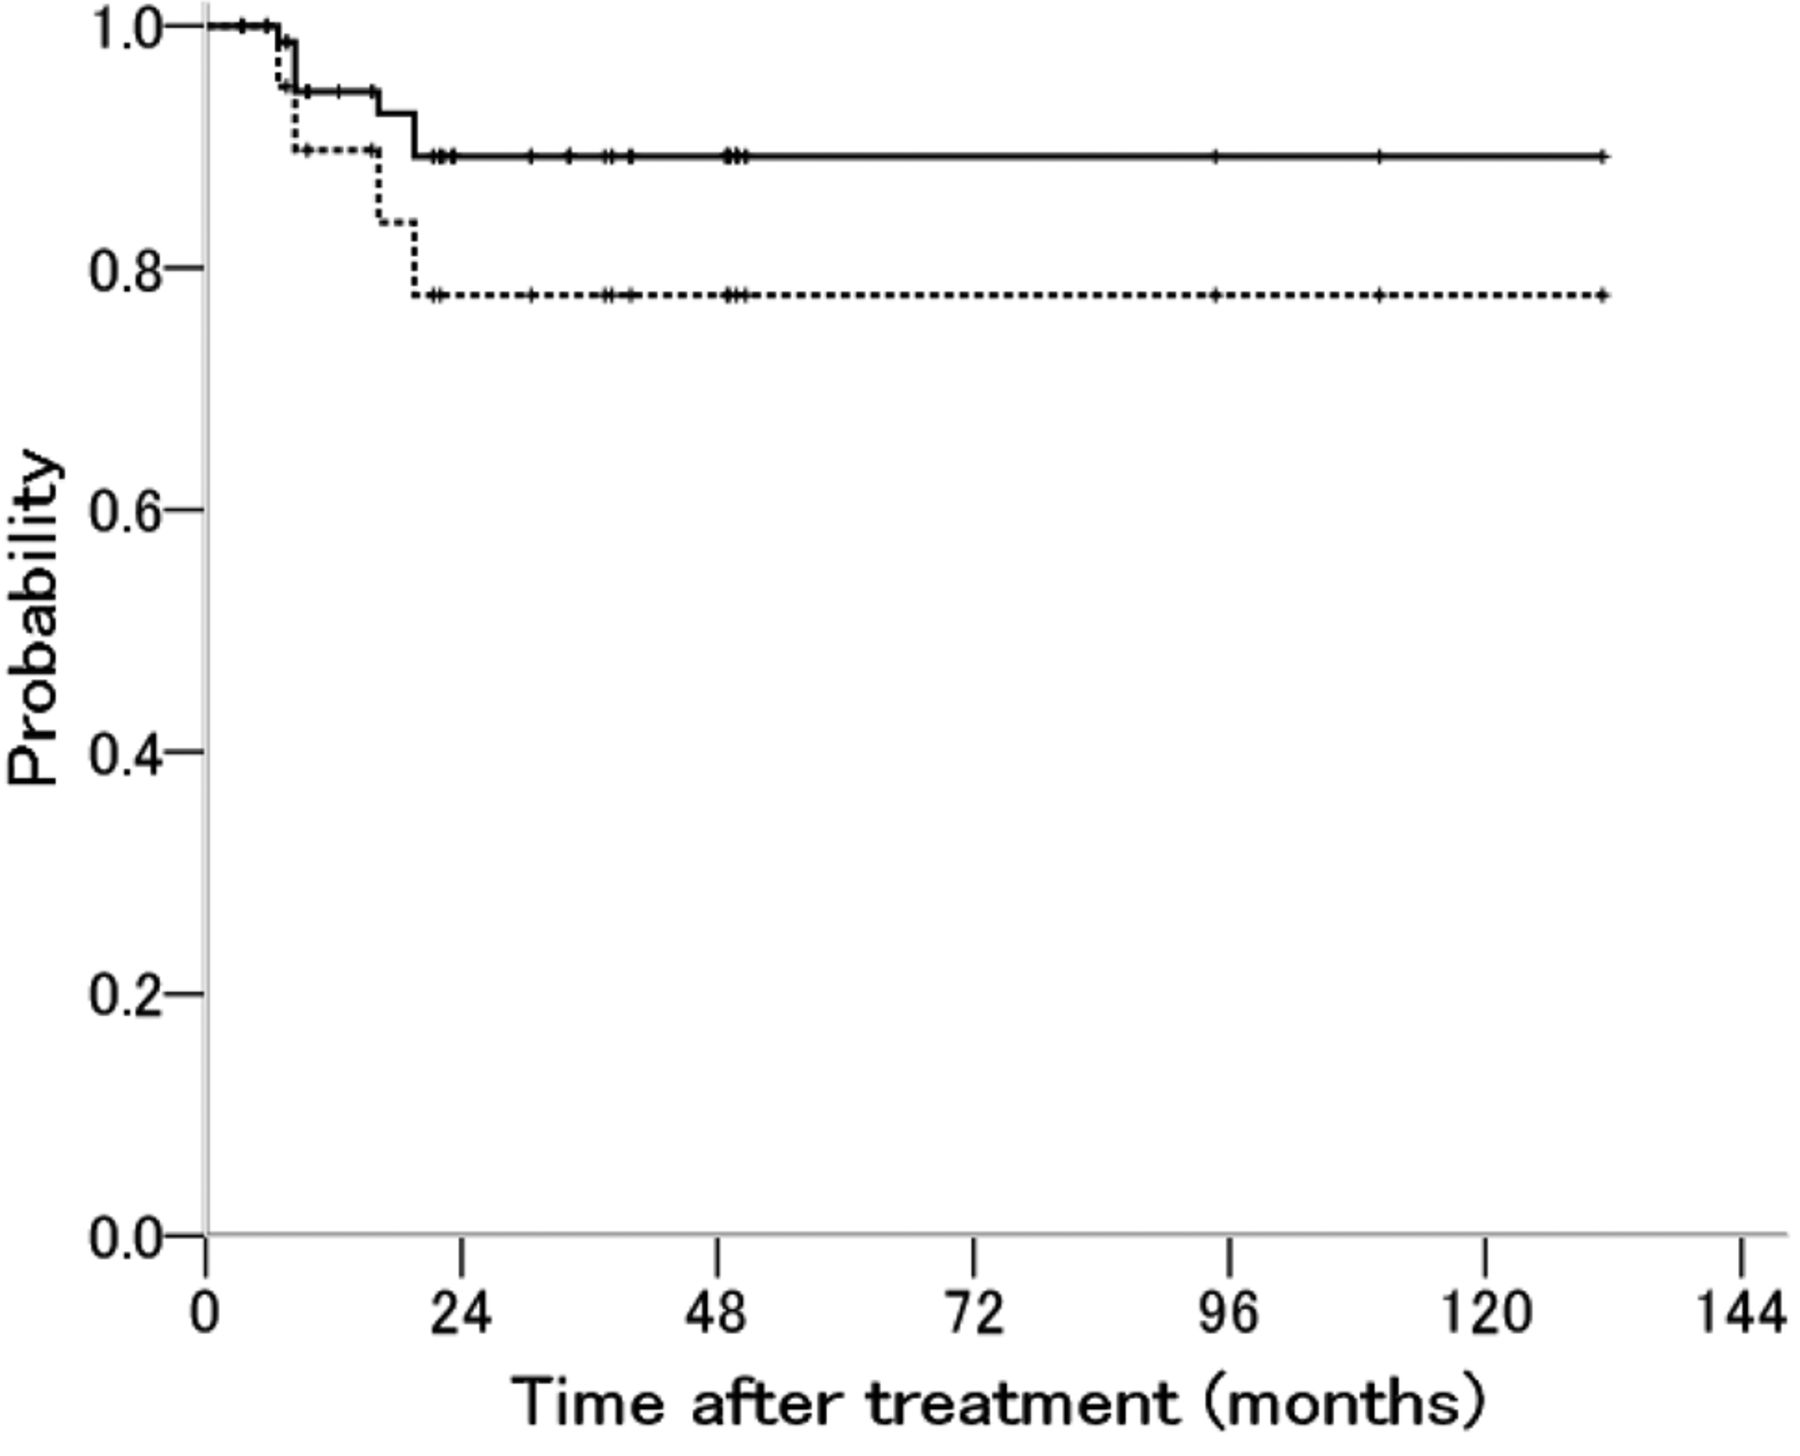 Radiation Therapy for Para-Aortic Lymph Node Metastasis from